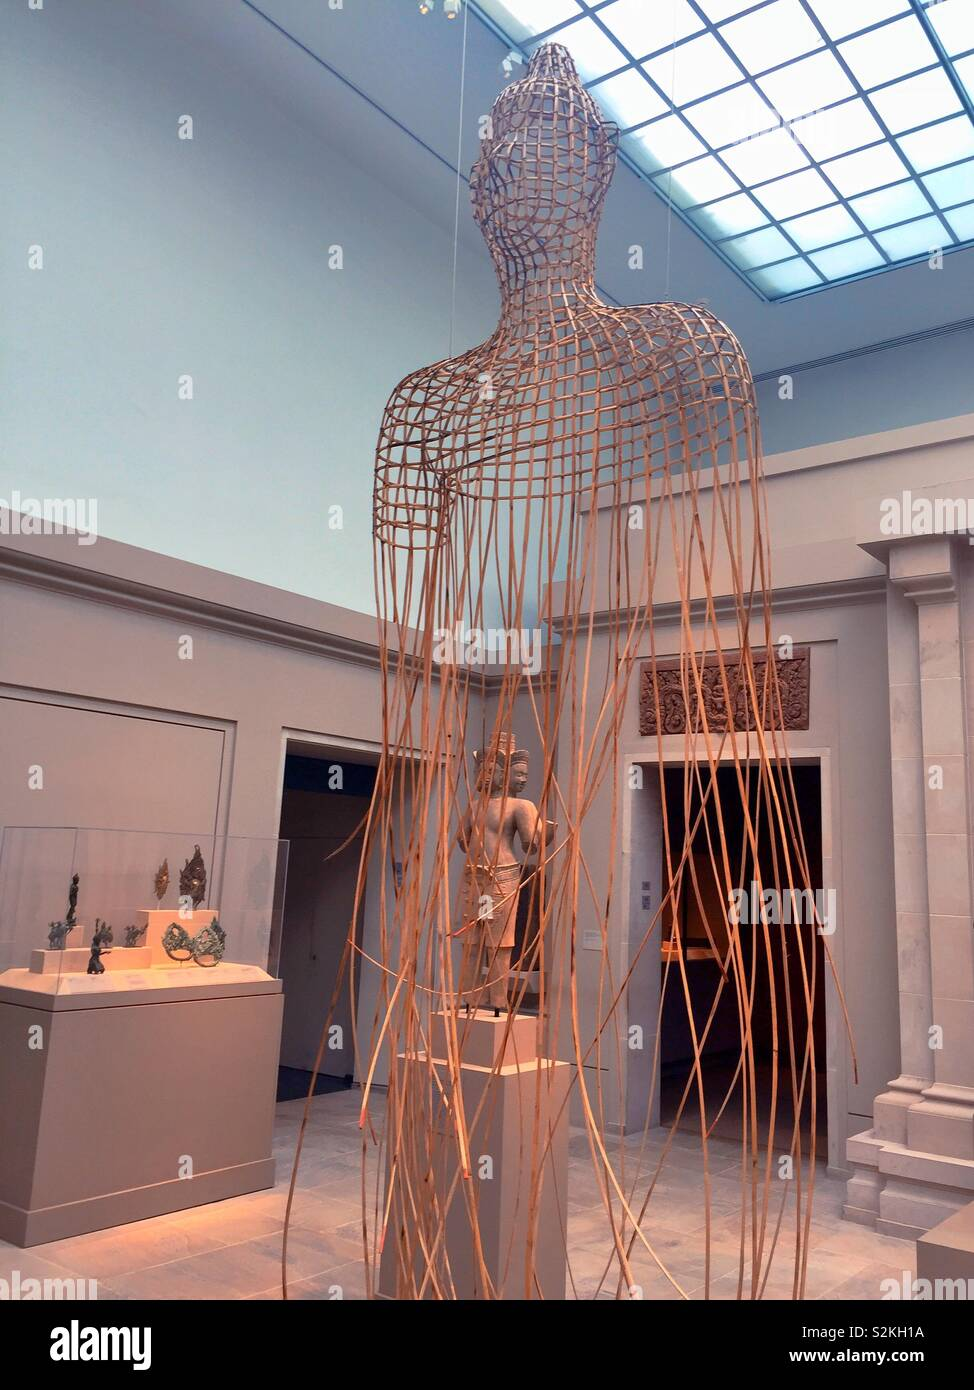 A rattan and wire Buddha sculpture in the Asian art galleries in the Metropolitan Museum of Art, NYC, USA Stock Photo